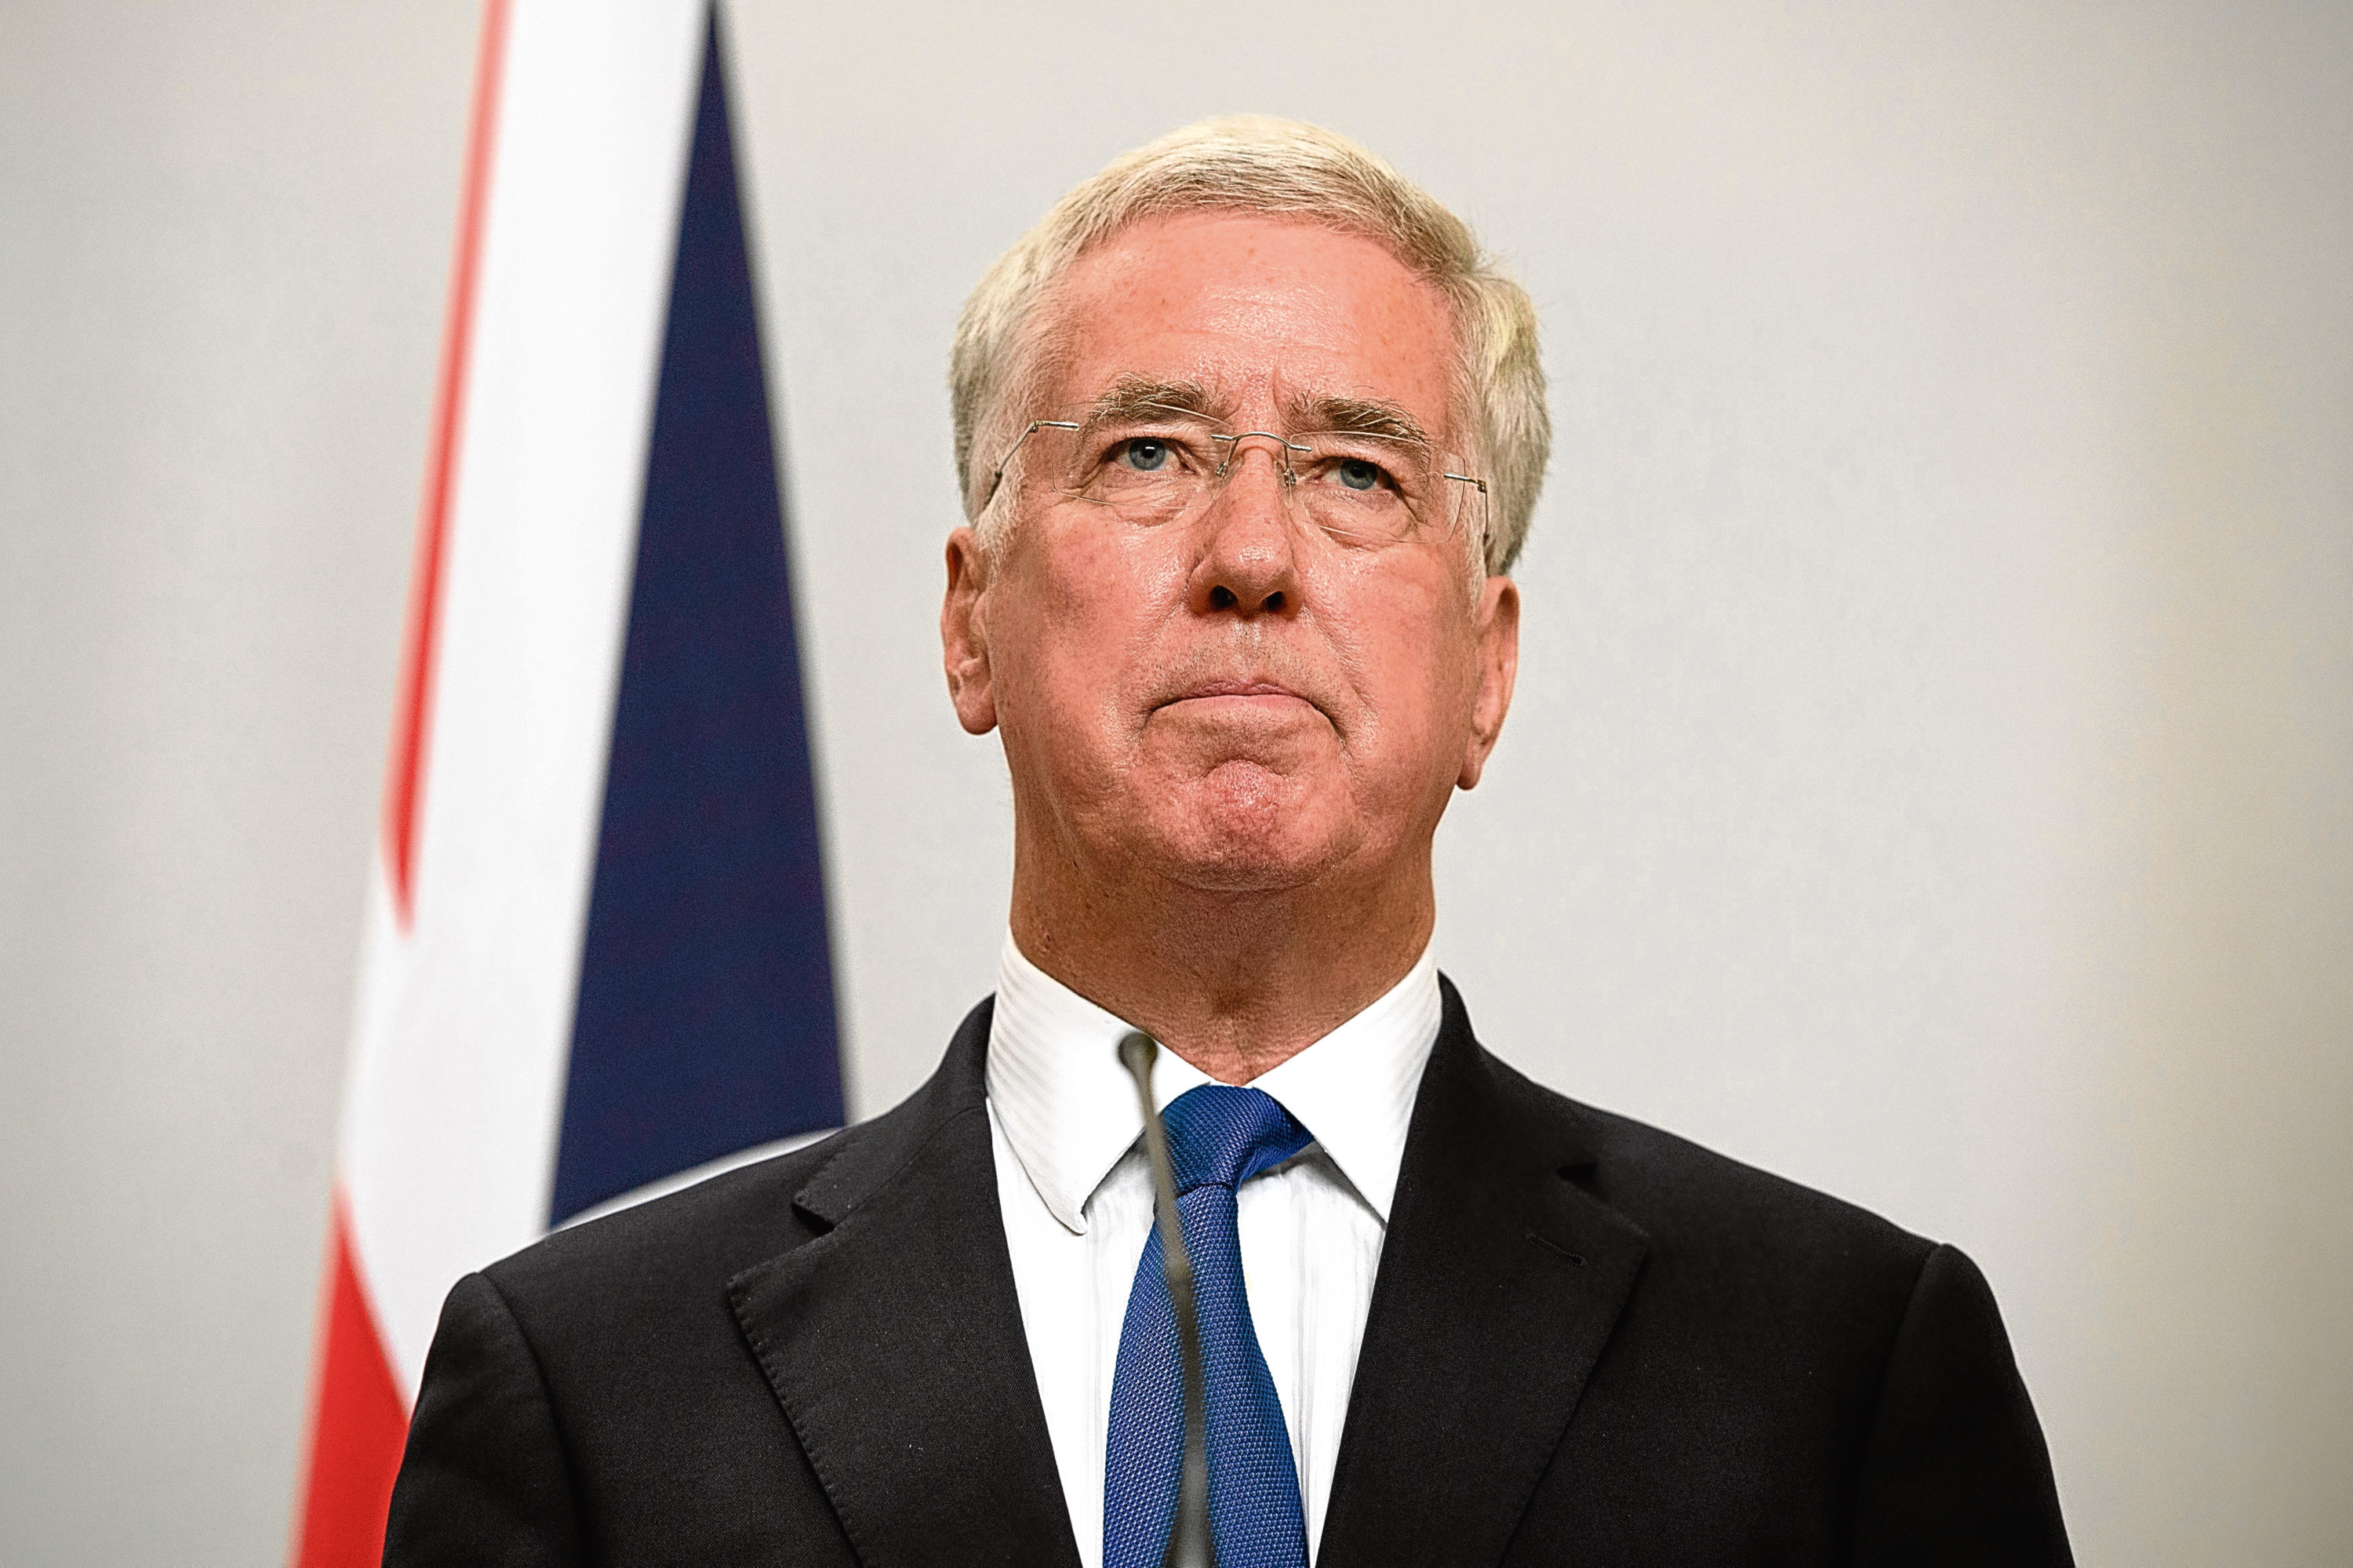 Sir Michael Fallon.